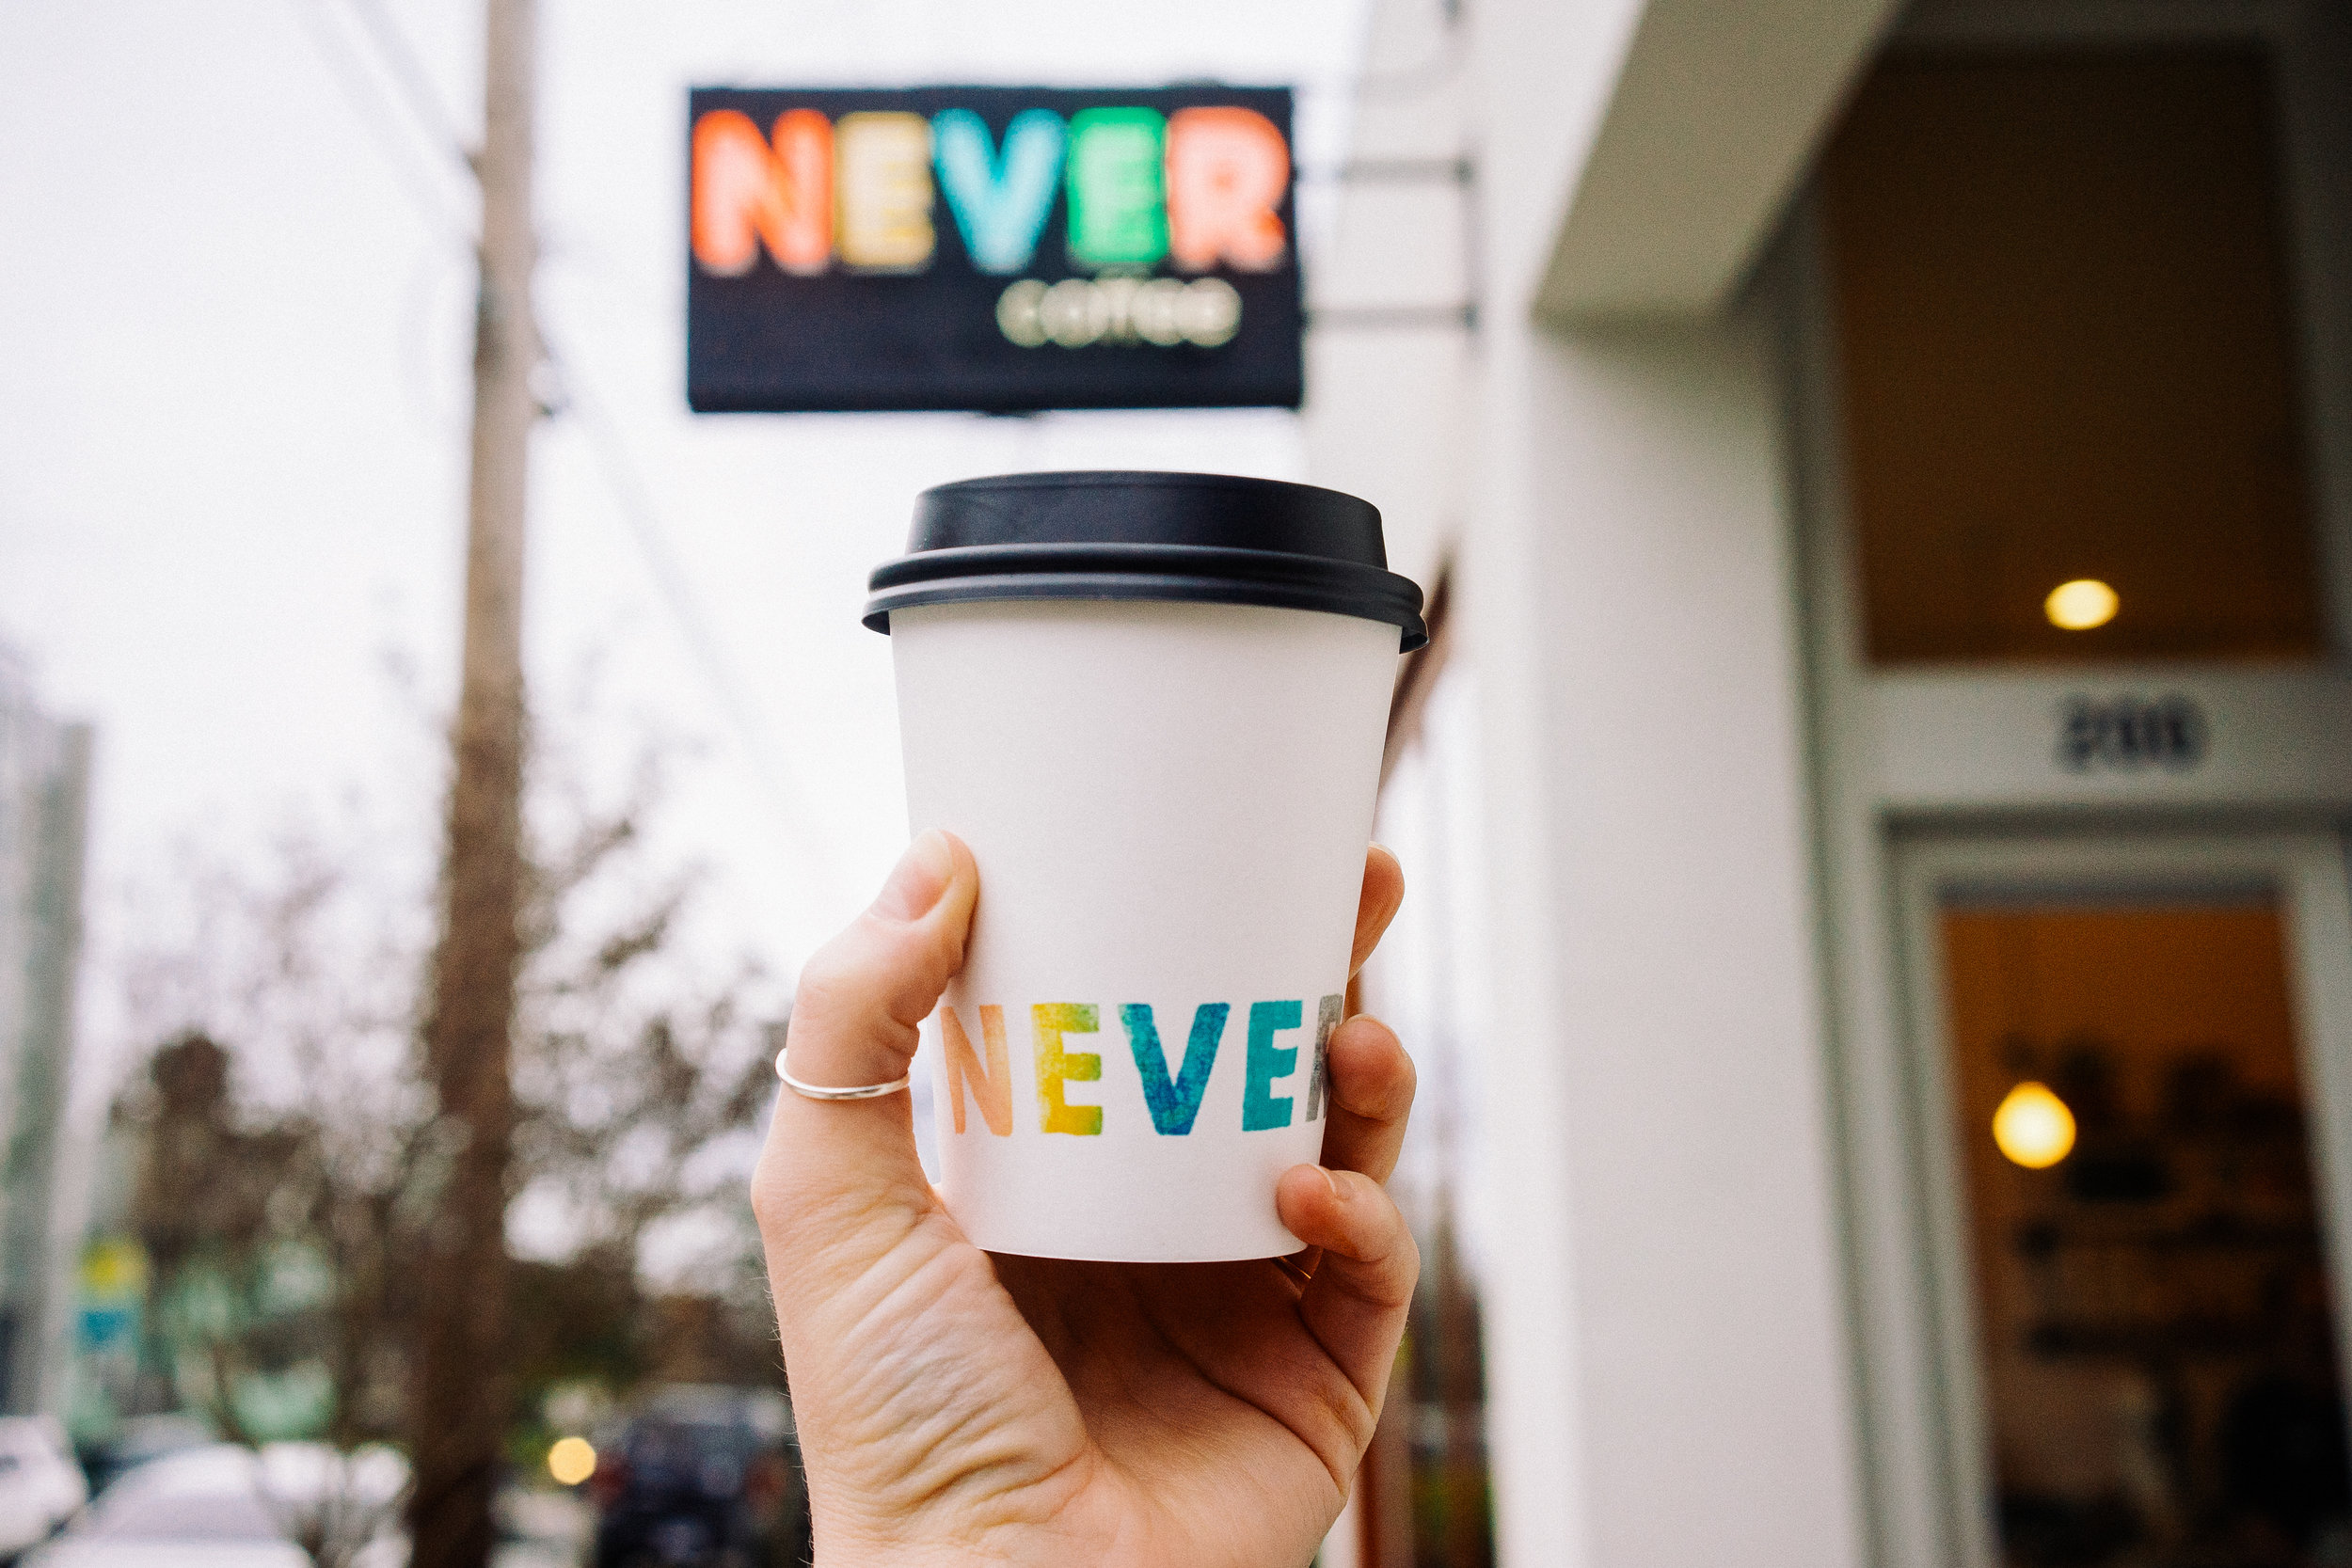 Never Coffee / brand design + art direction